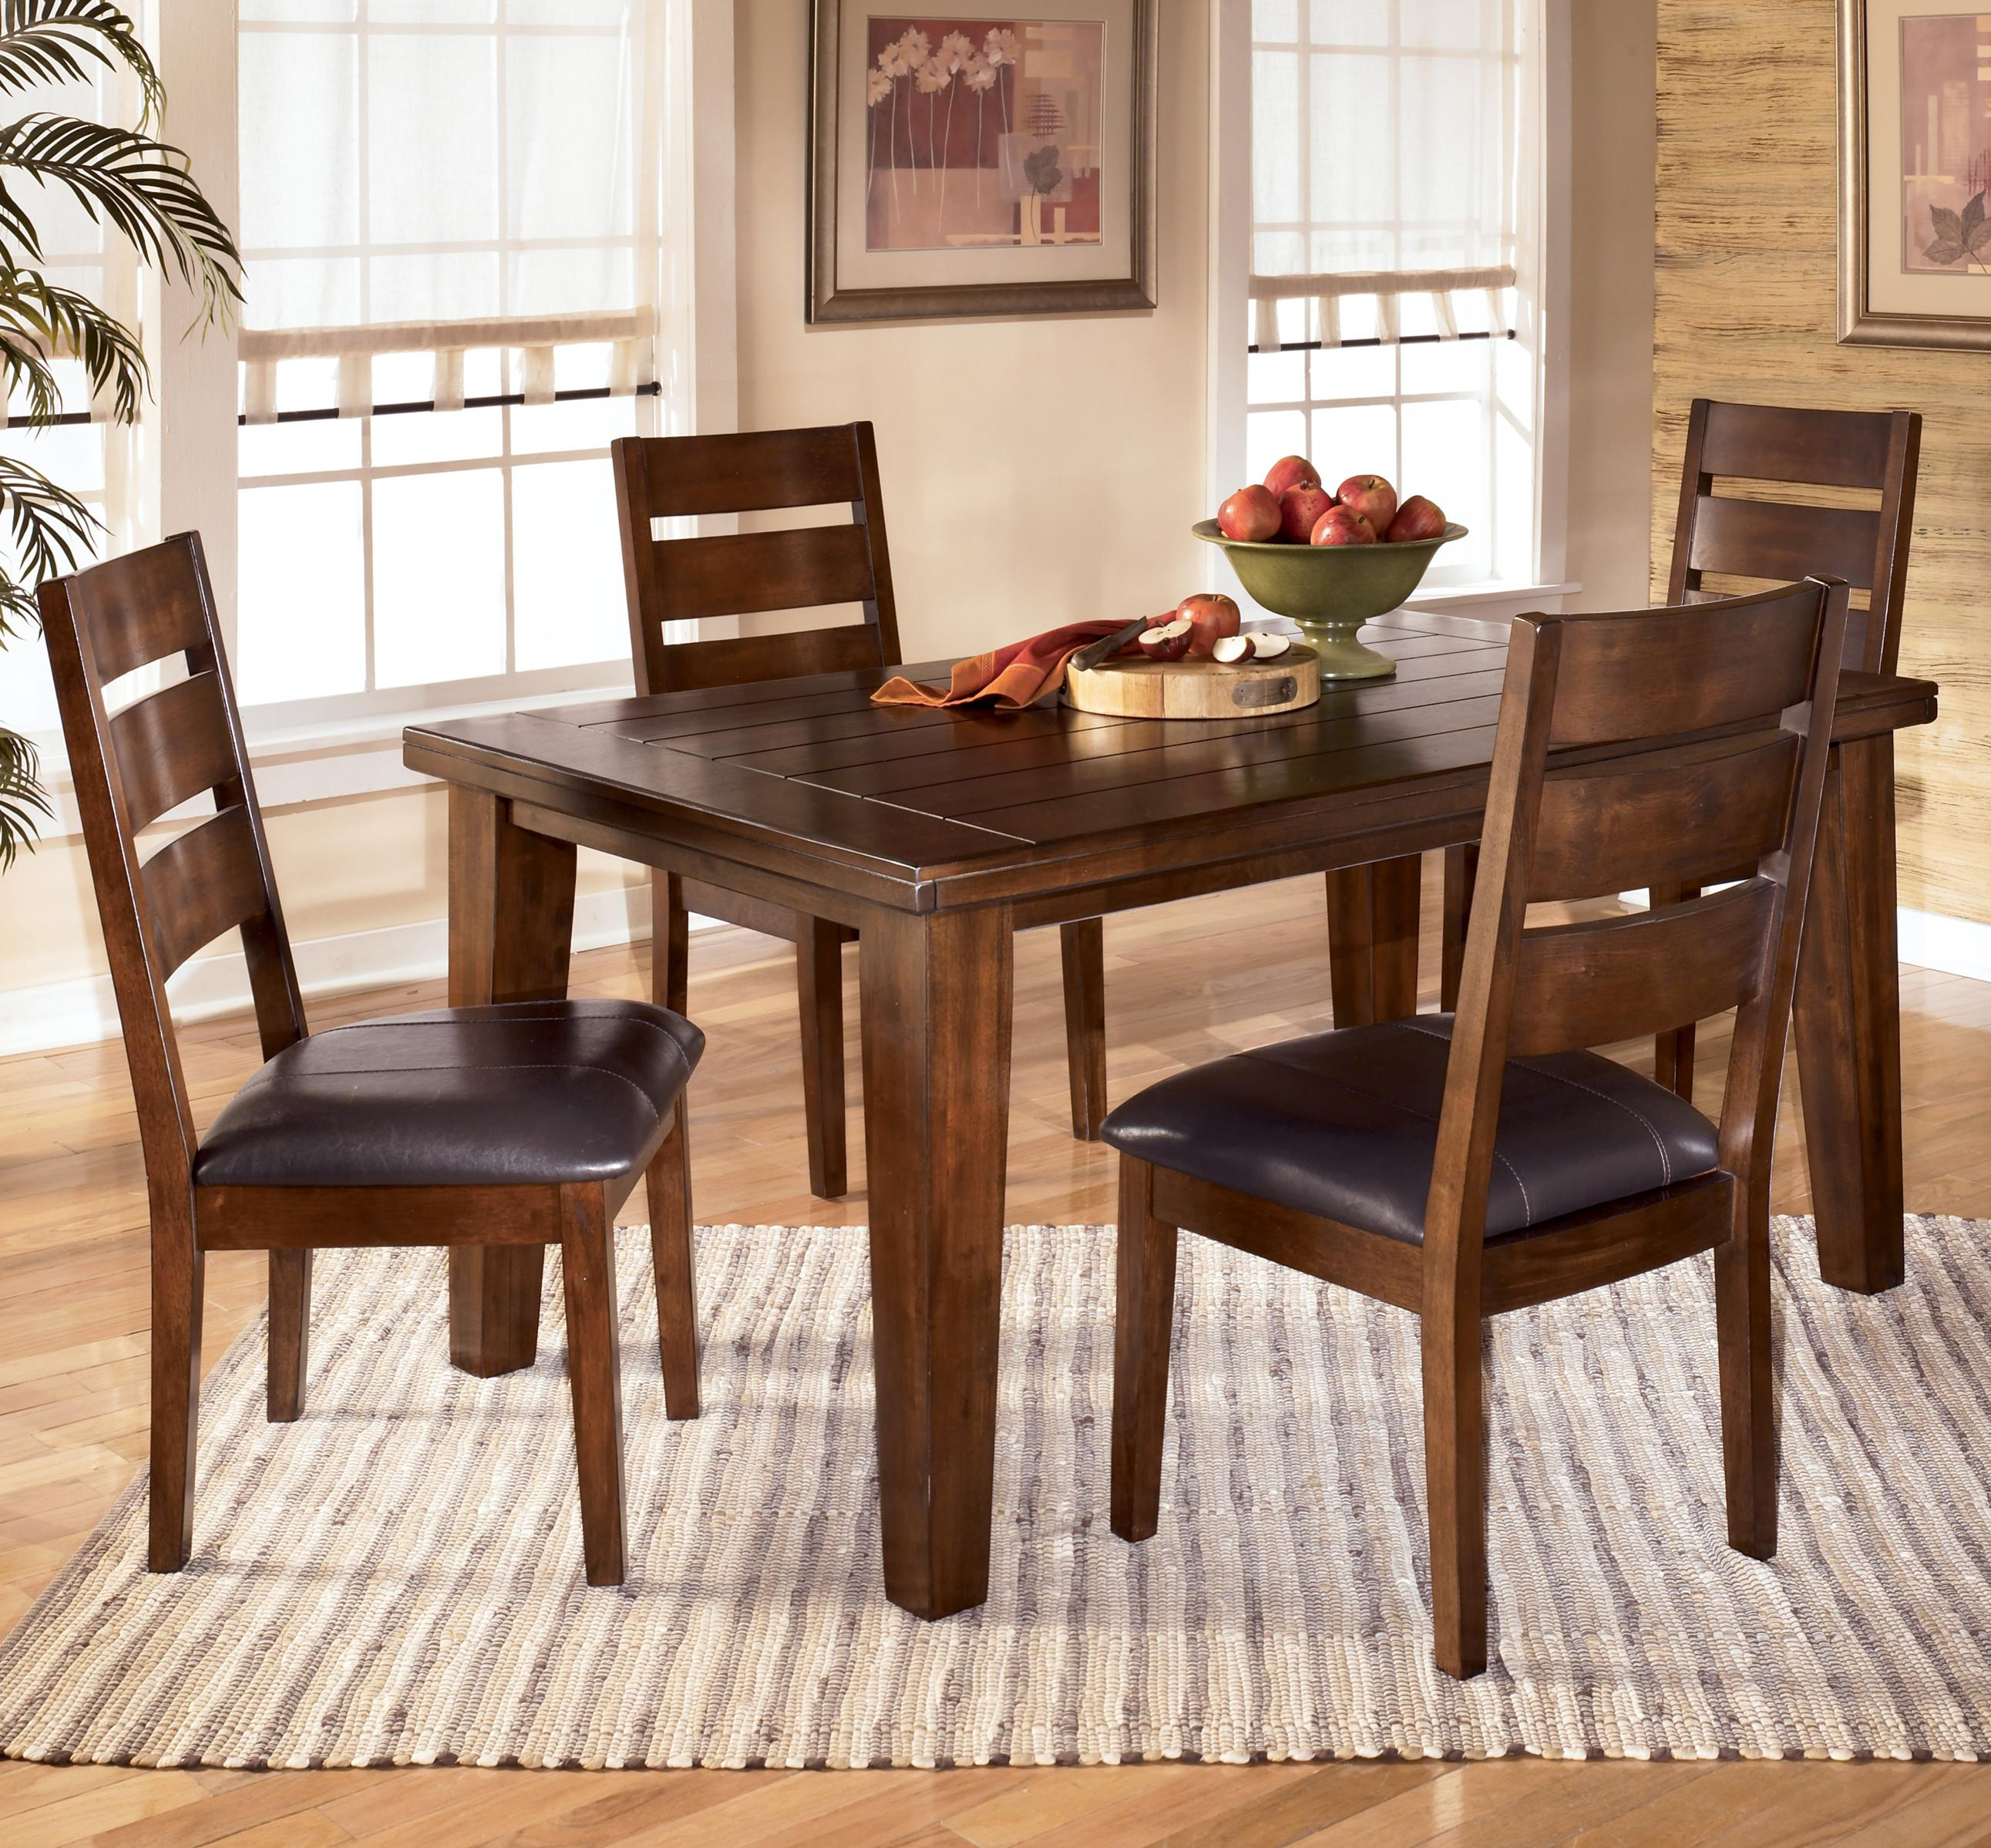 Ashley Dining Room Table And Chairs: Ashley Dining Table Set & Valuable Design Ashley Furniture